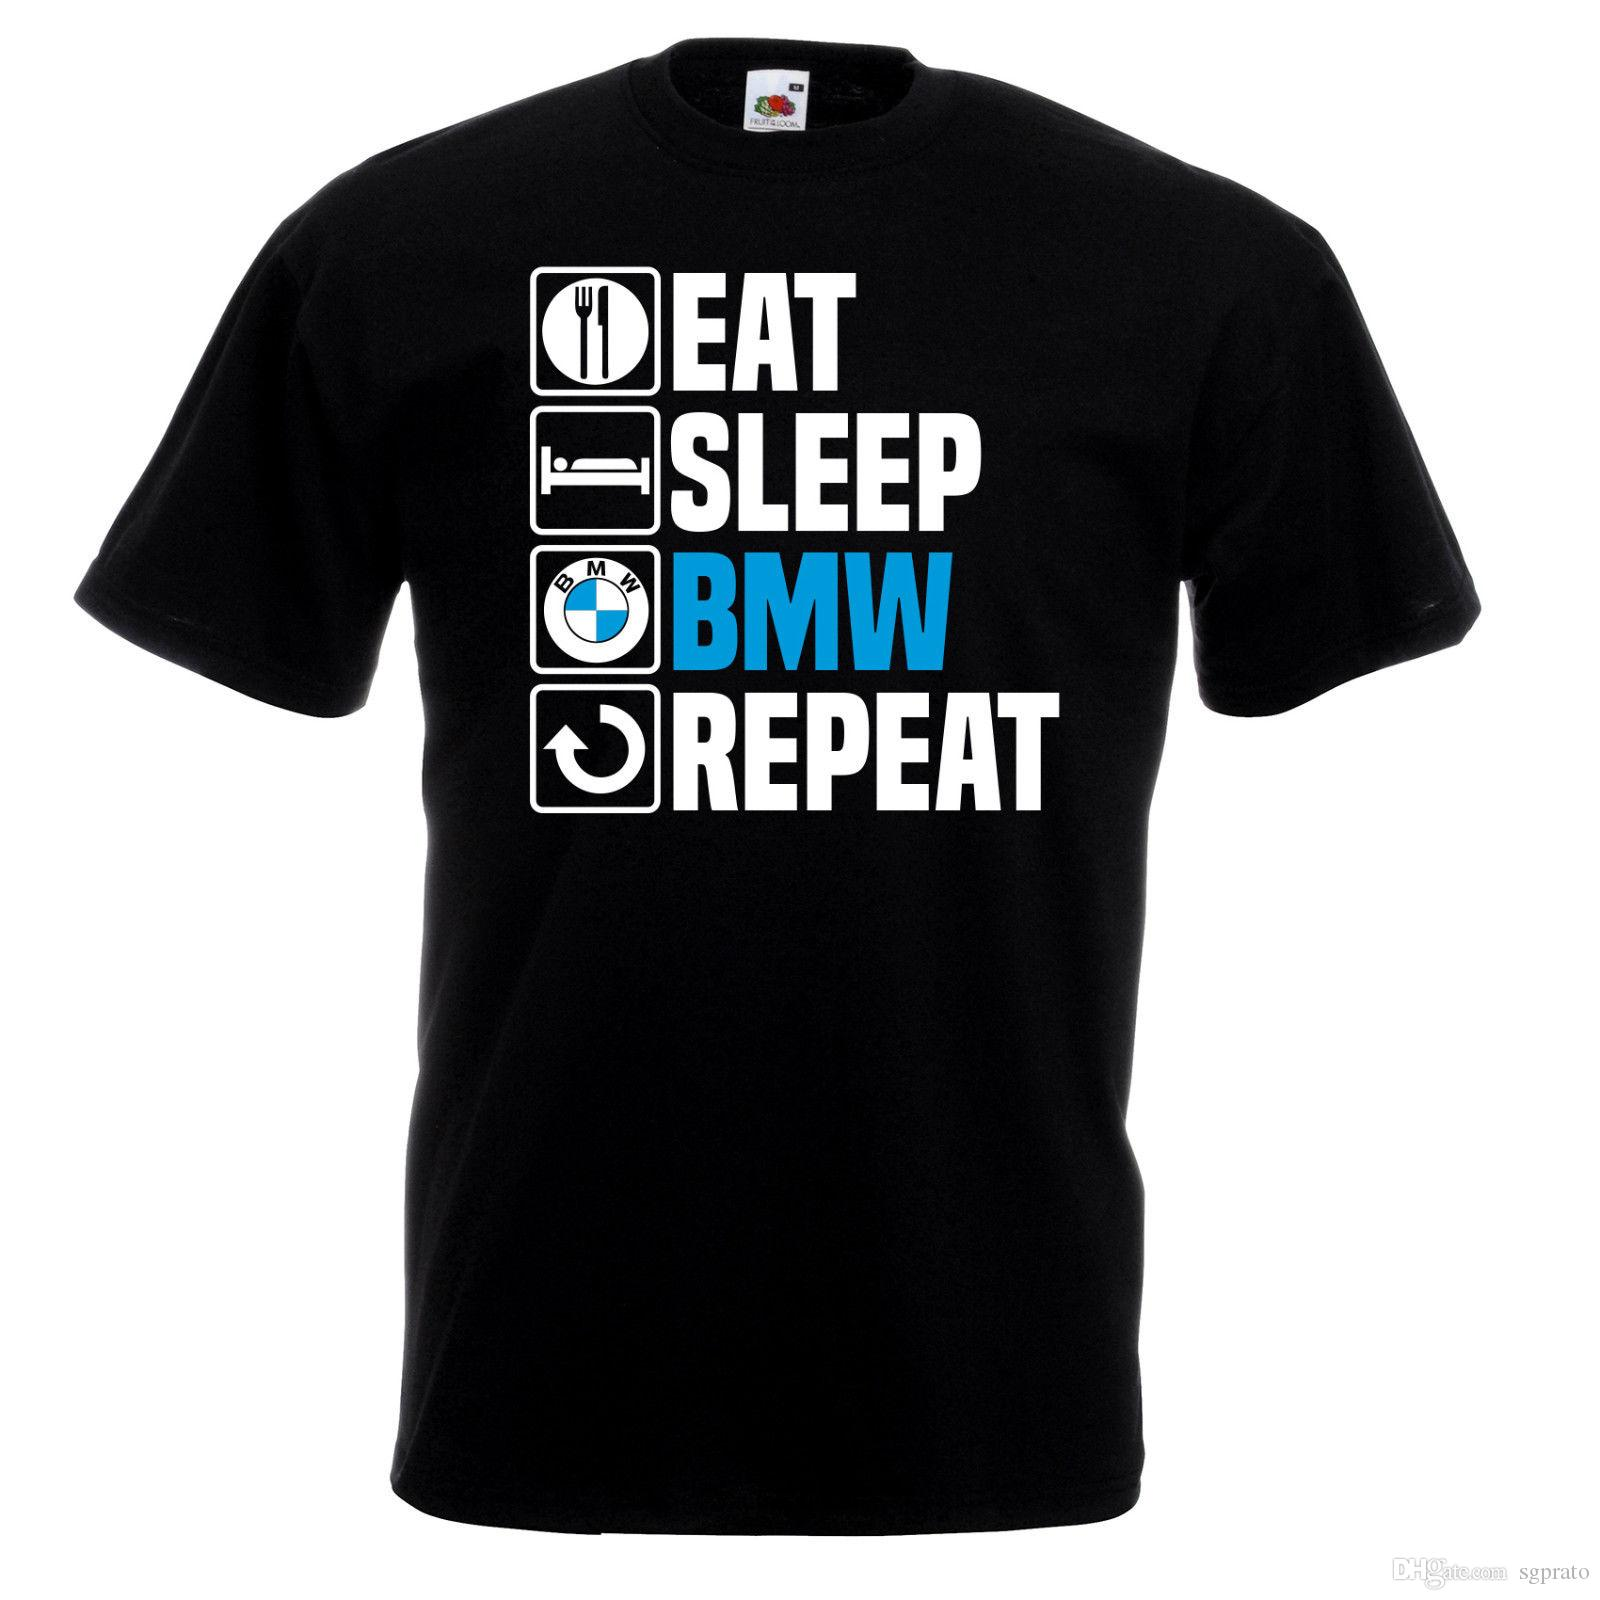 Eat Sleep Top Tee Repeat T Shirt Funny Dad Grandad Birthday Gift Top Ideas Cotton Shirts White T Shirts From Sgprato, $10.52| DHgate.Com